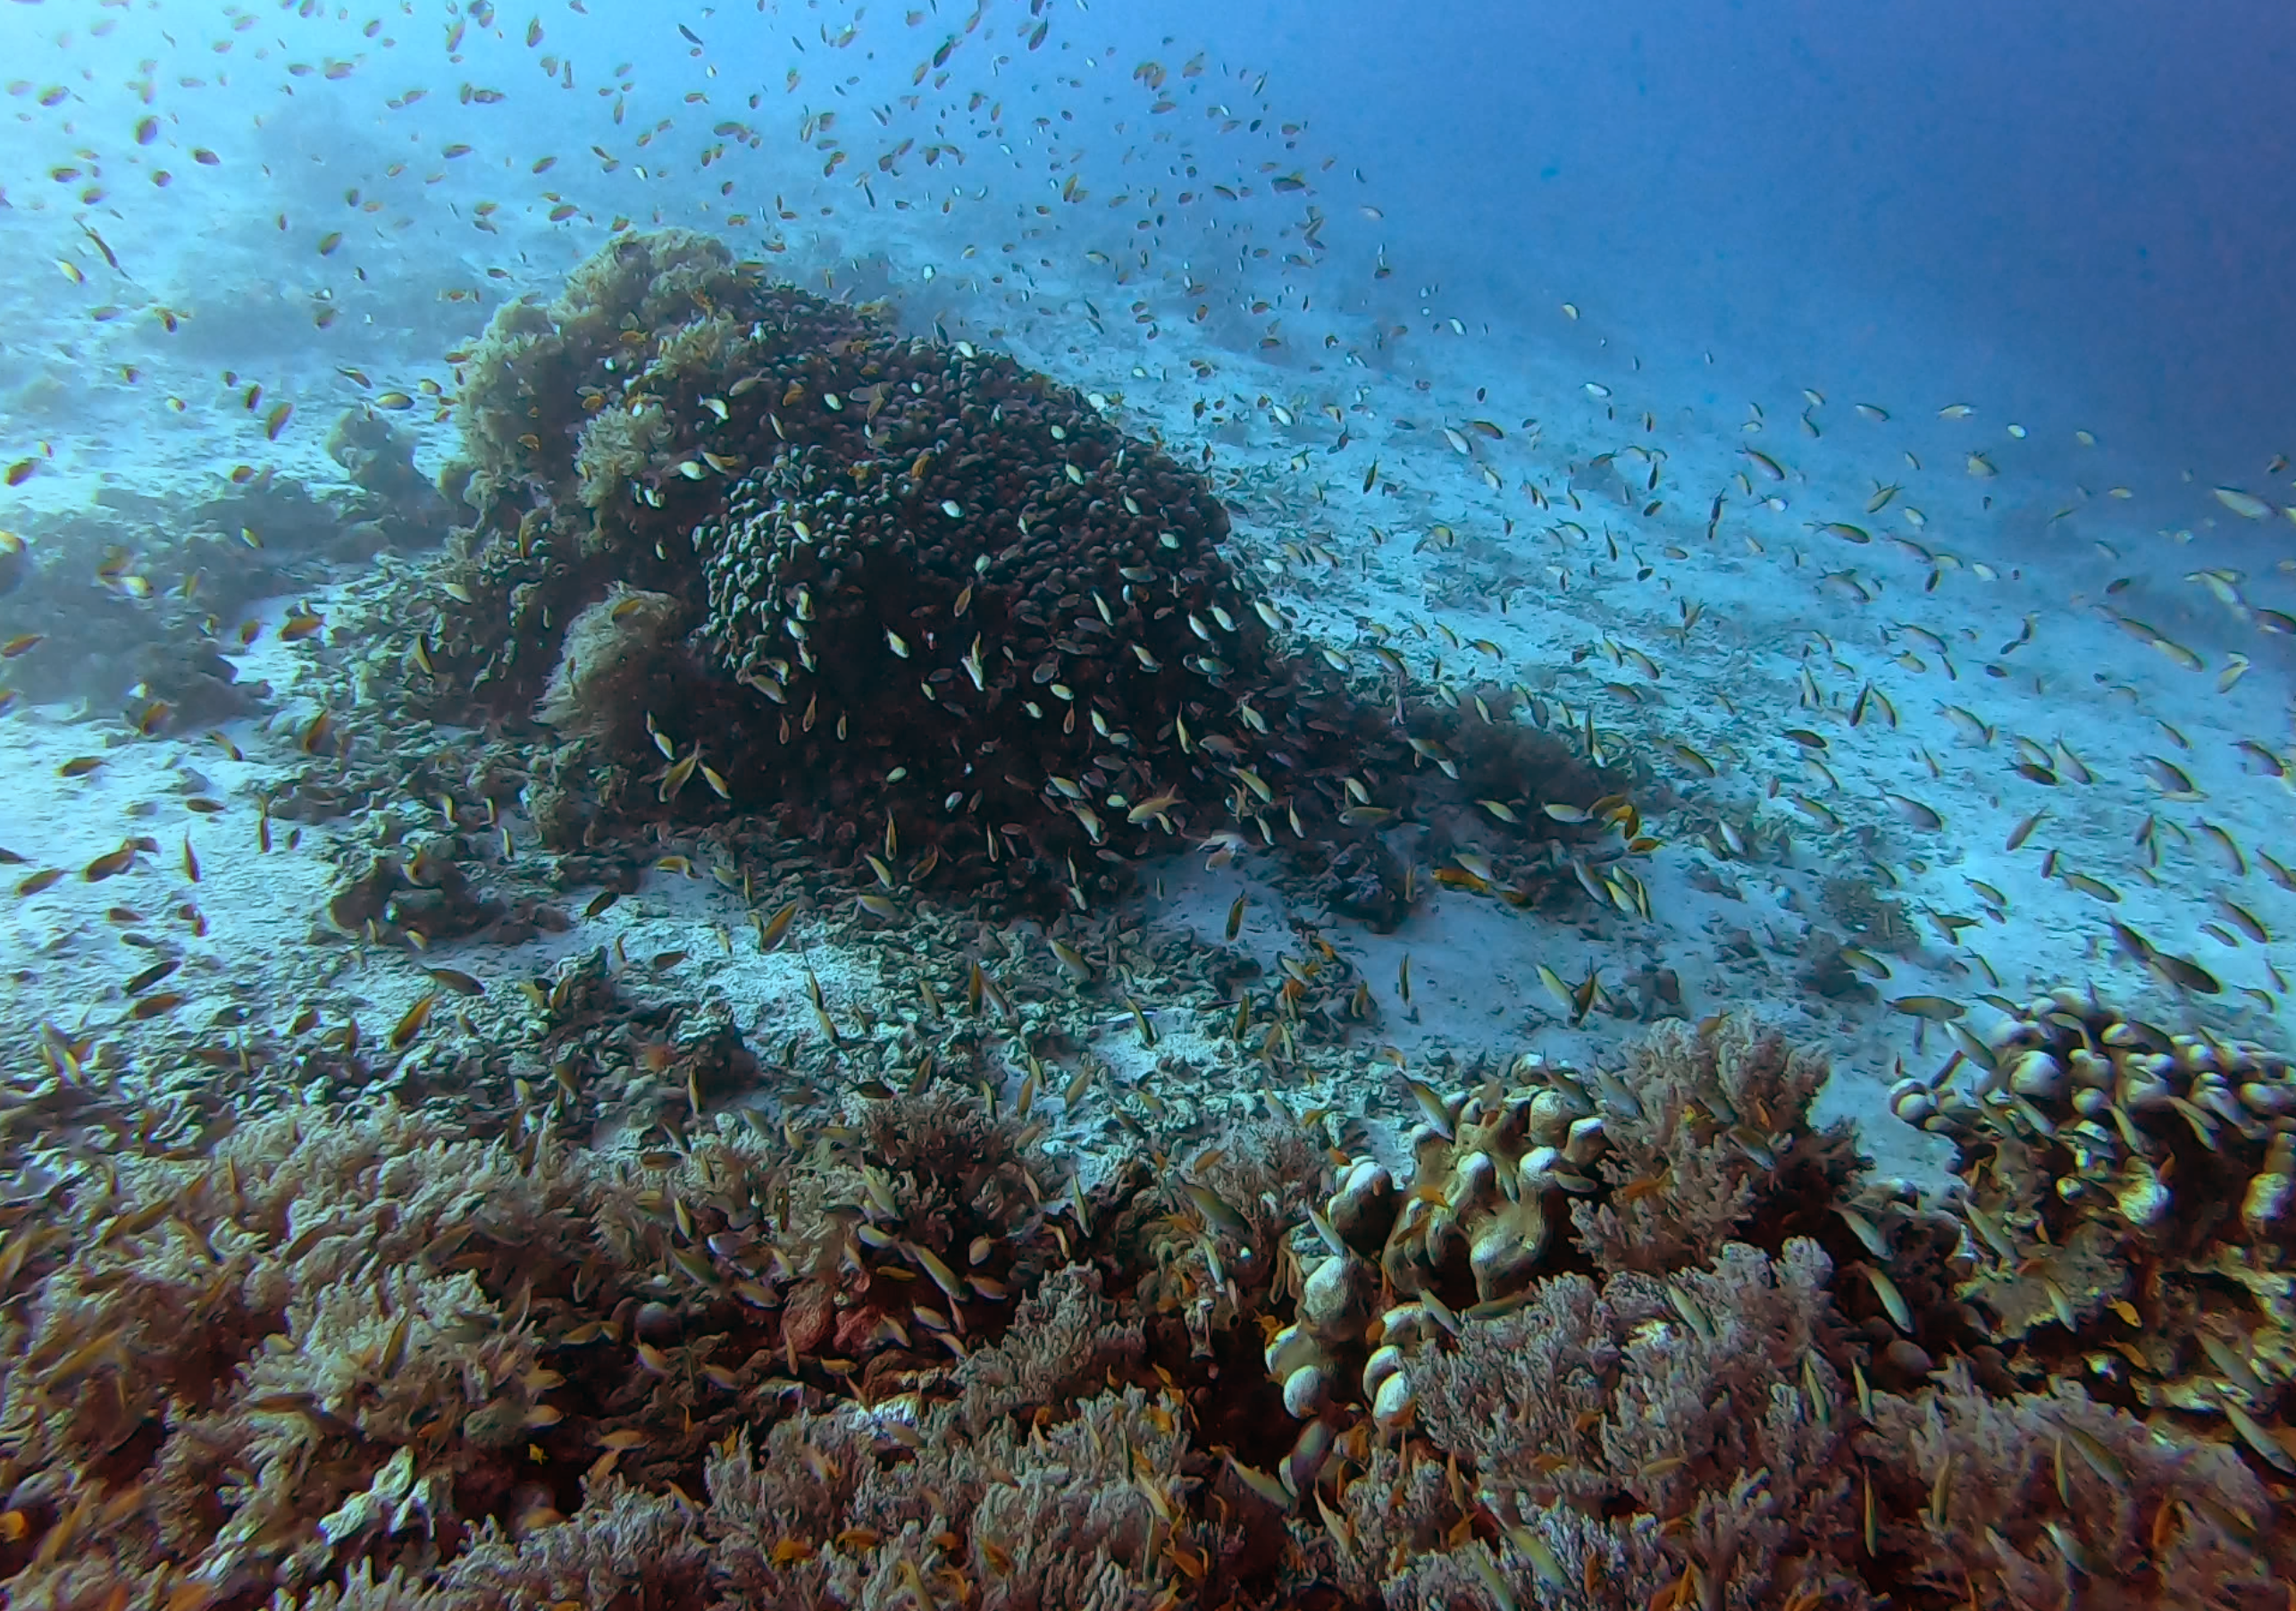 An area filled with living coral, and the bountiful fish population drawn to it